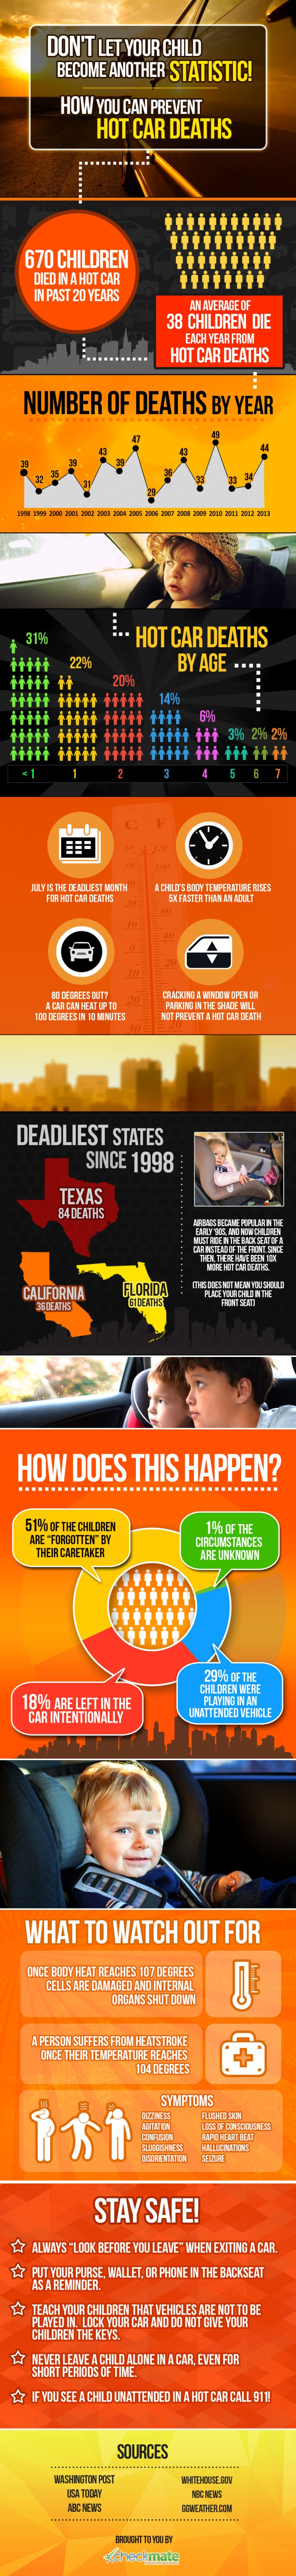 hot-car-deaths- inforgraphic